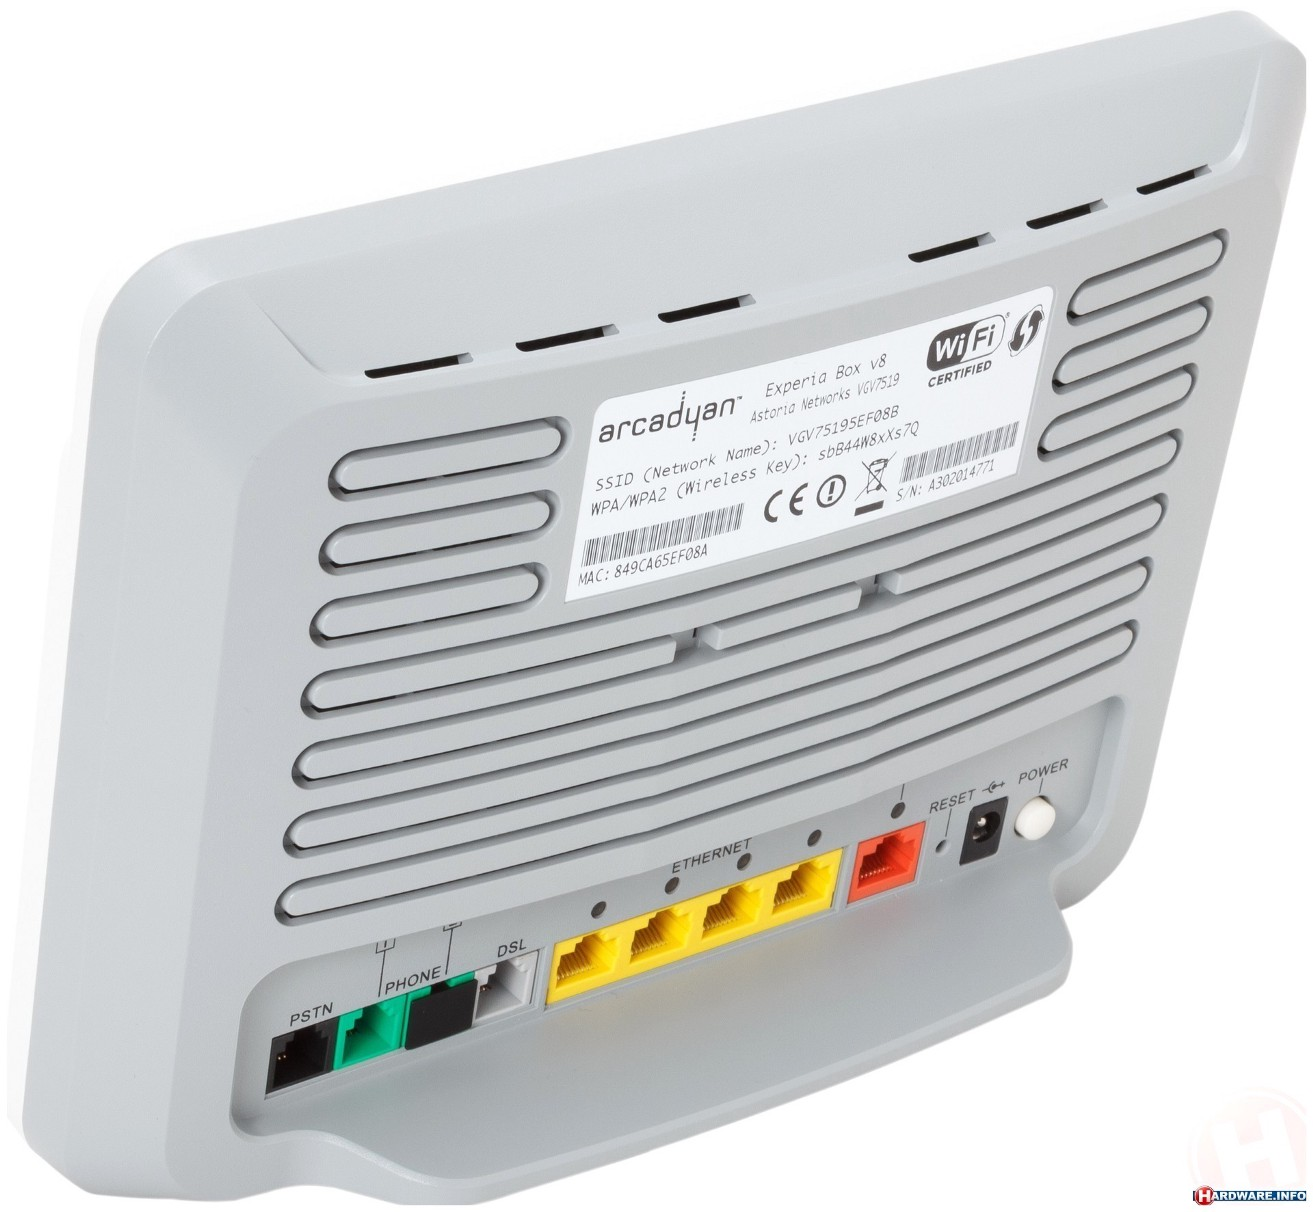 hight resolution of a kpn experia box all in one modem router wifi